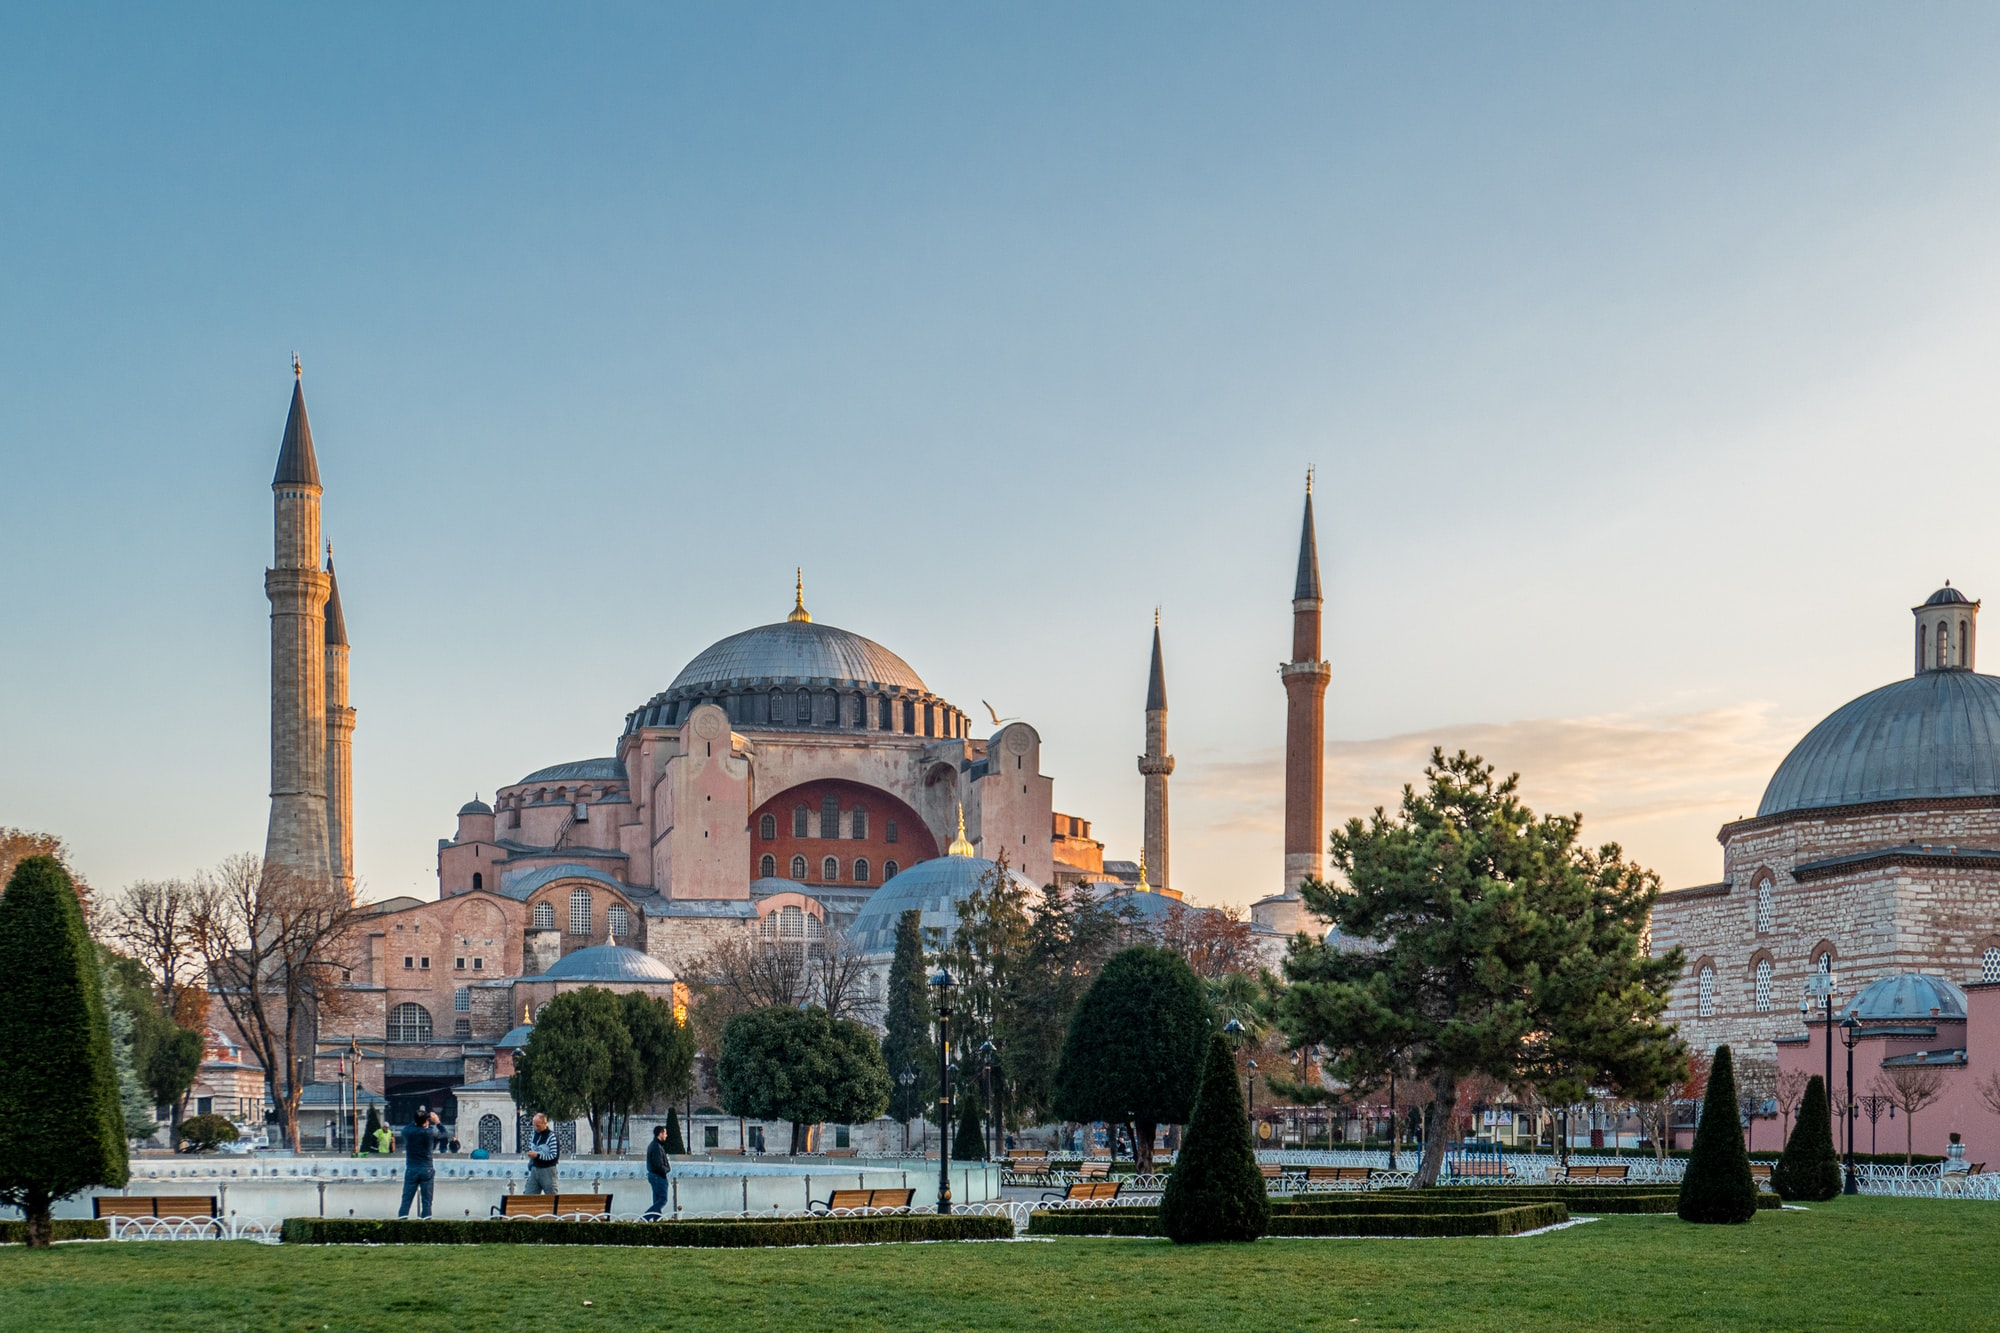 Hagia Sophia, Istanbul Turkey.  One of the greatest existing examples of Byzantine architecture.  It was the largest cathedral in the world for 1000 years.  It was also a Mosque for 500 years and now is a museum.